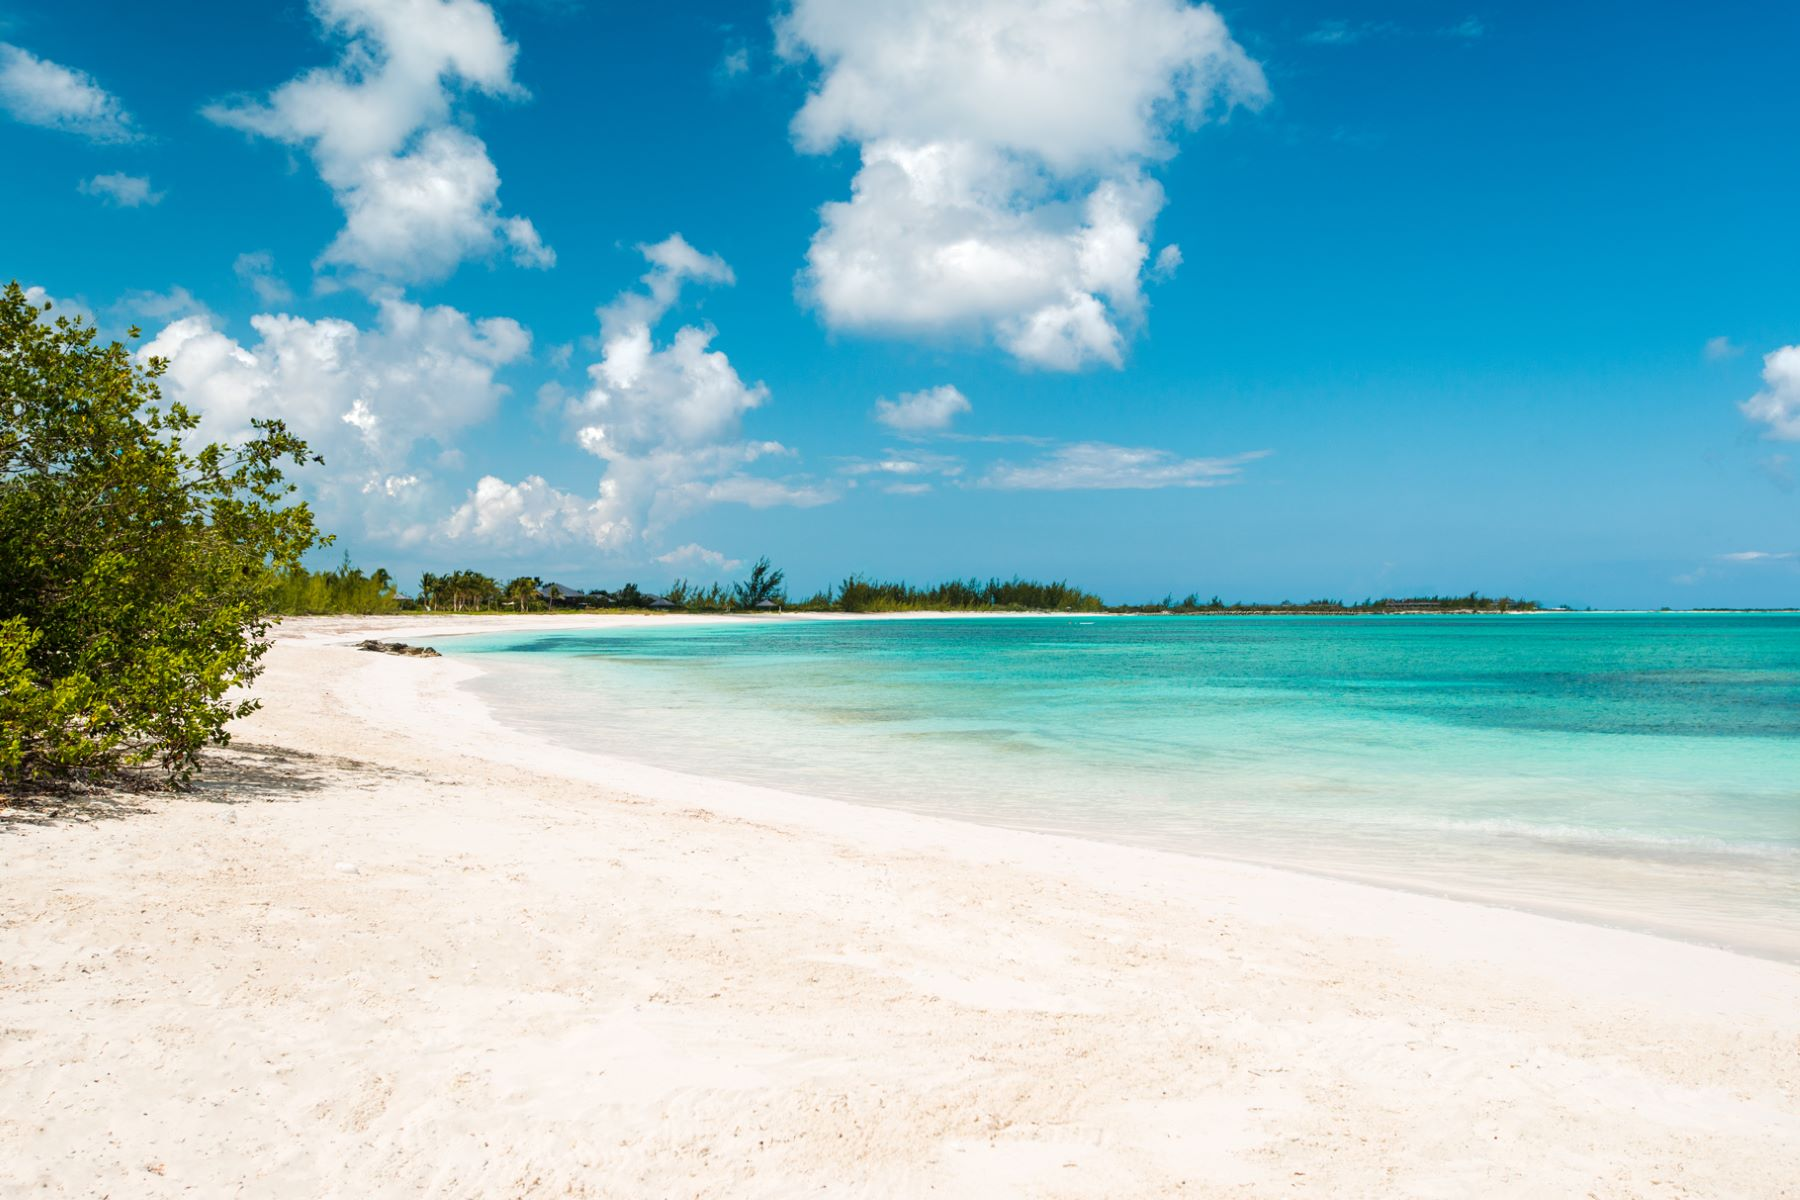 Land for Sale at Parrot Cay Estate Land 167, 168 & 169 Parrot Cay, Parrot Cay Turks And Caicos Islands